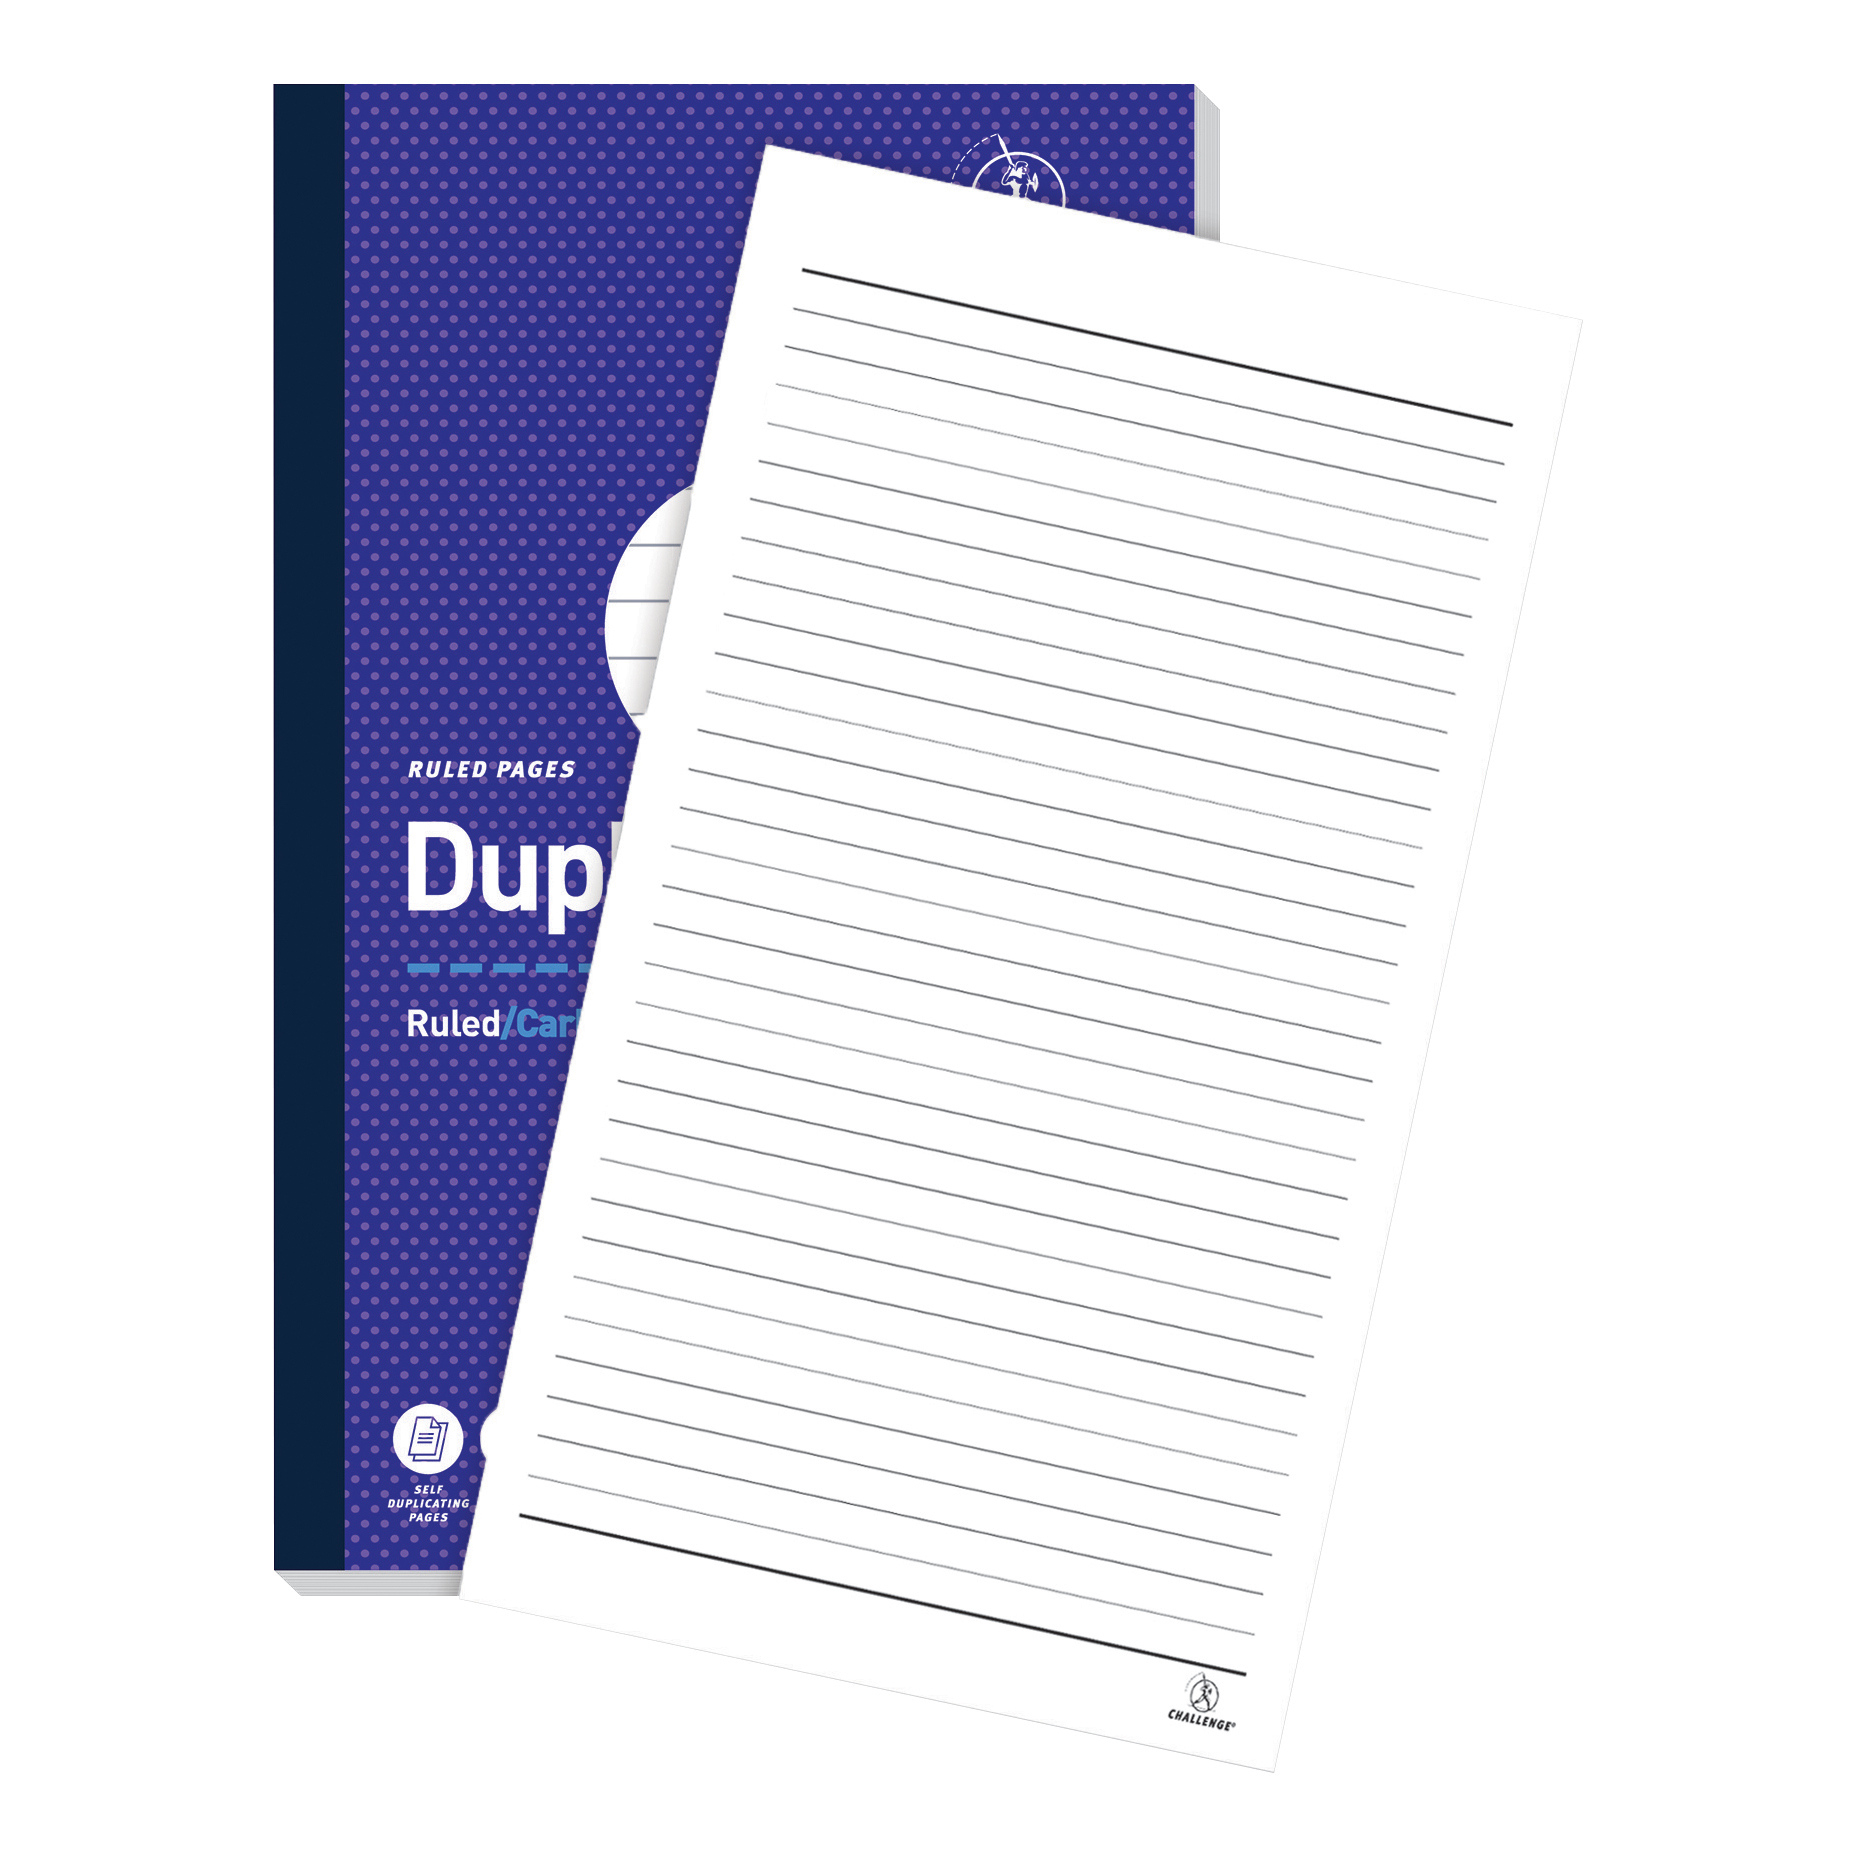 Duplicate Challenge Duplicate Book Carbonless Ruled 100 Sets 297x195mm Ref 100080527 [Pack 3]